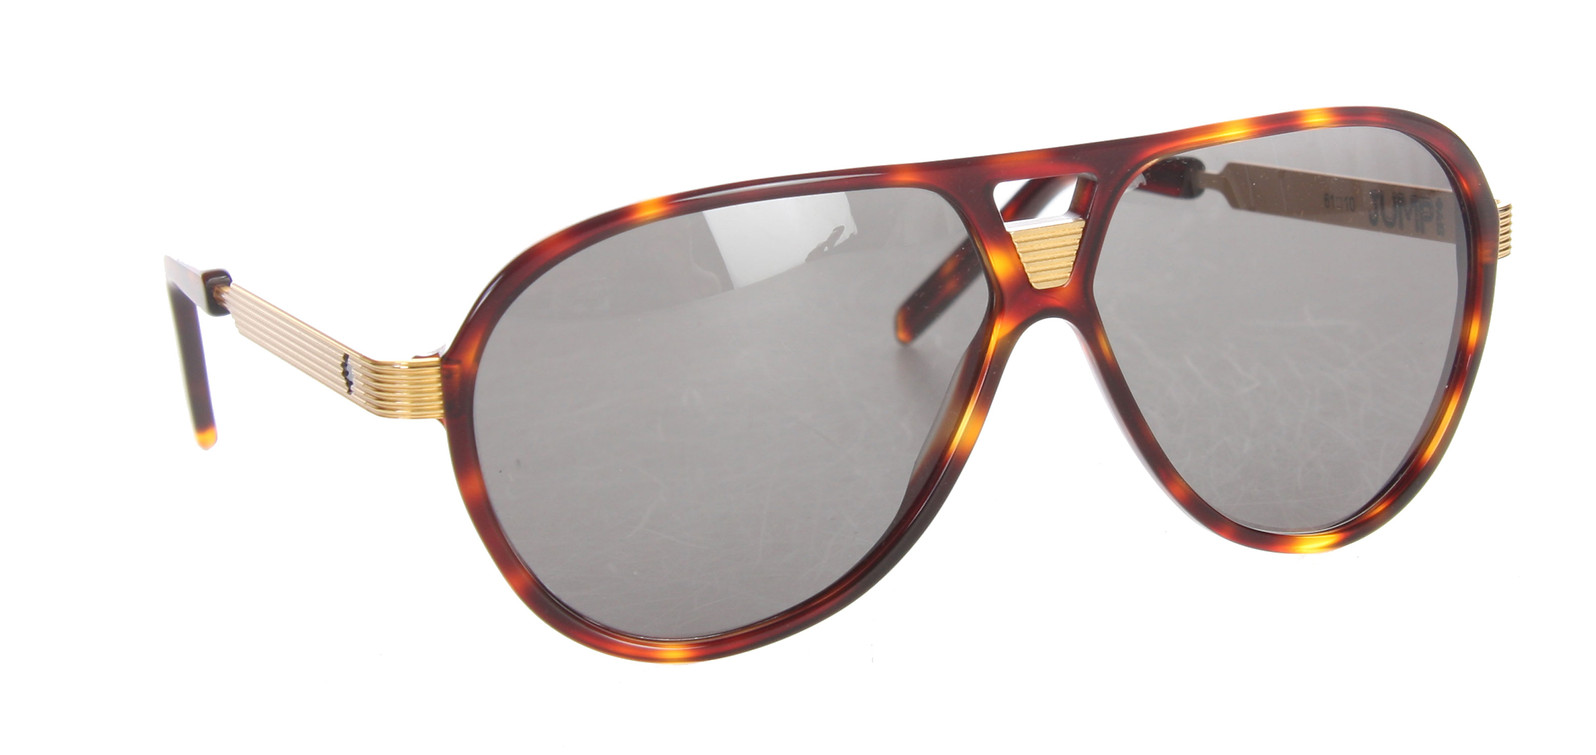 Spy Optic Spy Jump Sunglasses Tortoise/Gold/Grey Green Lens  spy-jump-sngls-tortgldgrygrn-10.jpg